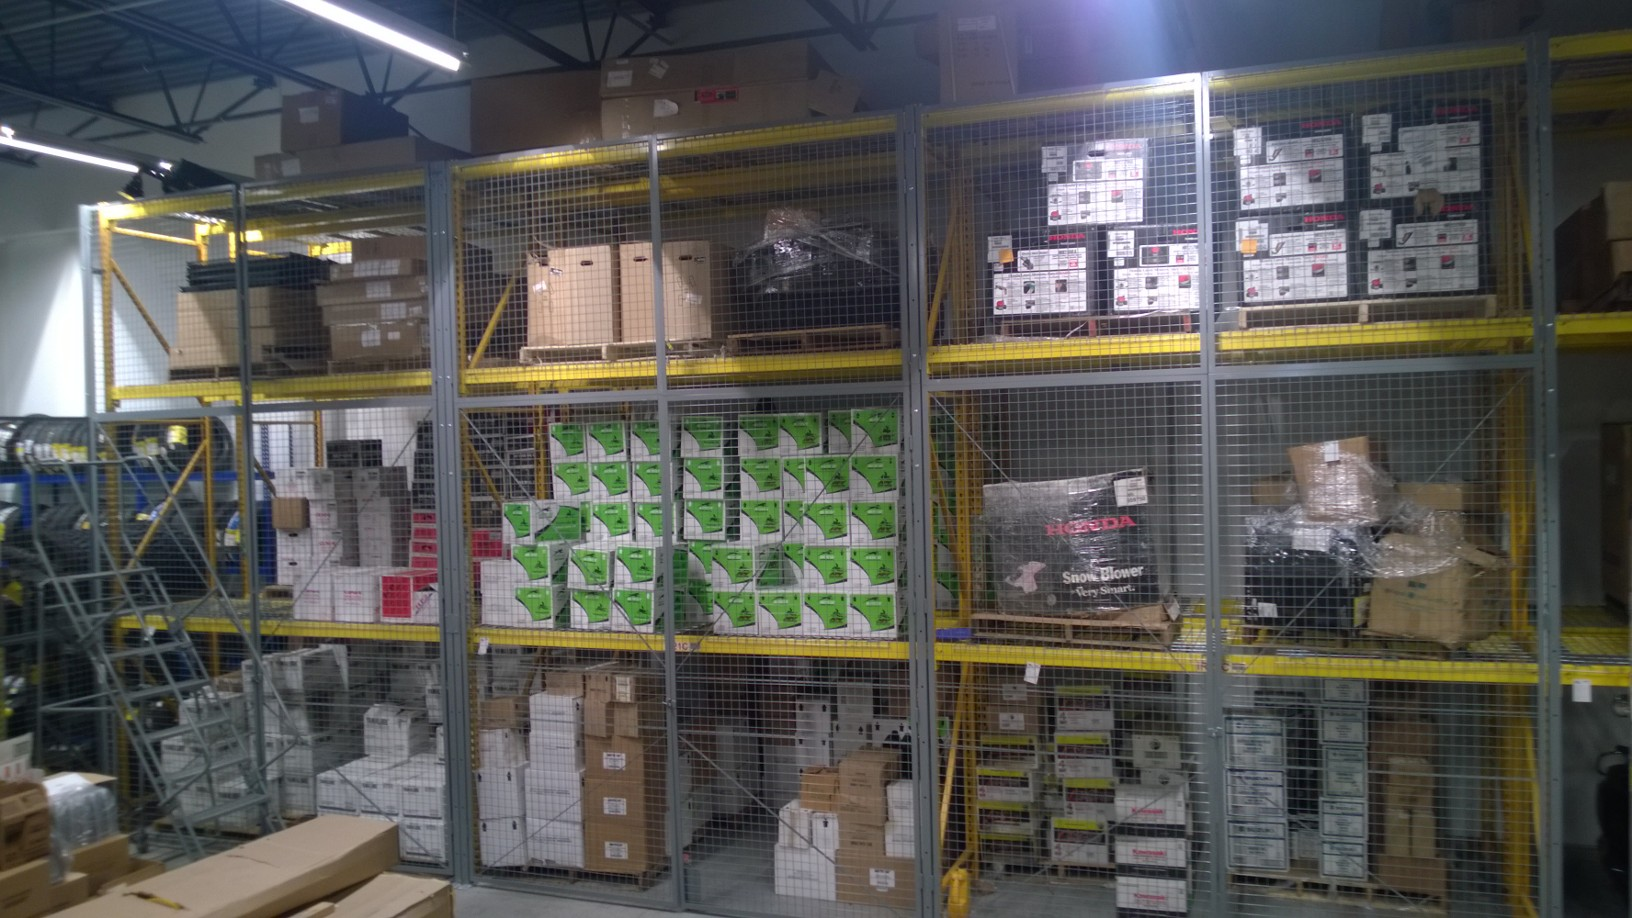 Wire Racks Storage, Fencing, OSHA Guards, and more fencing products